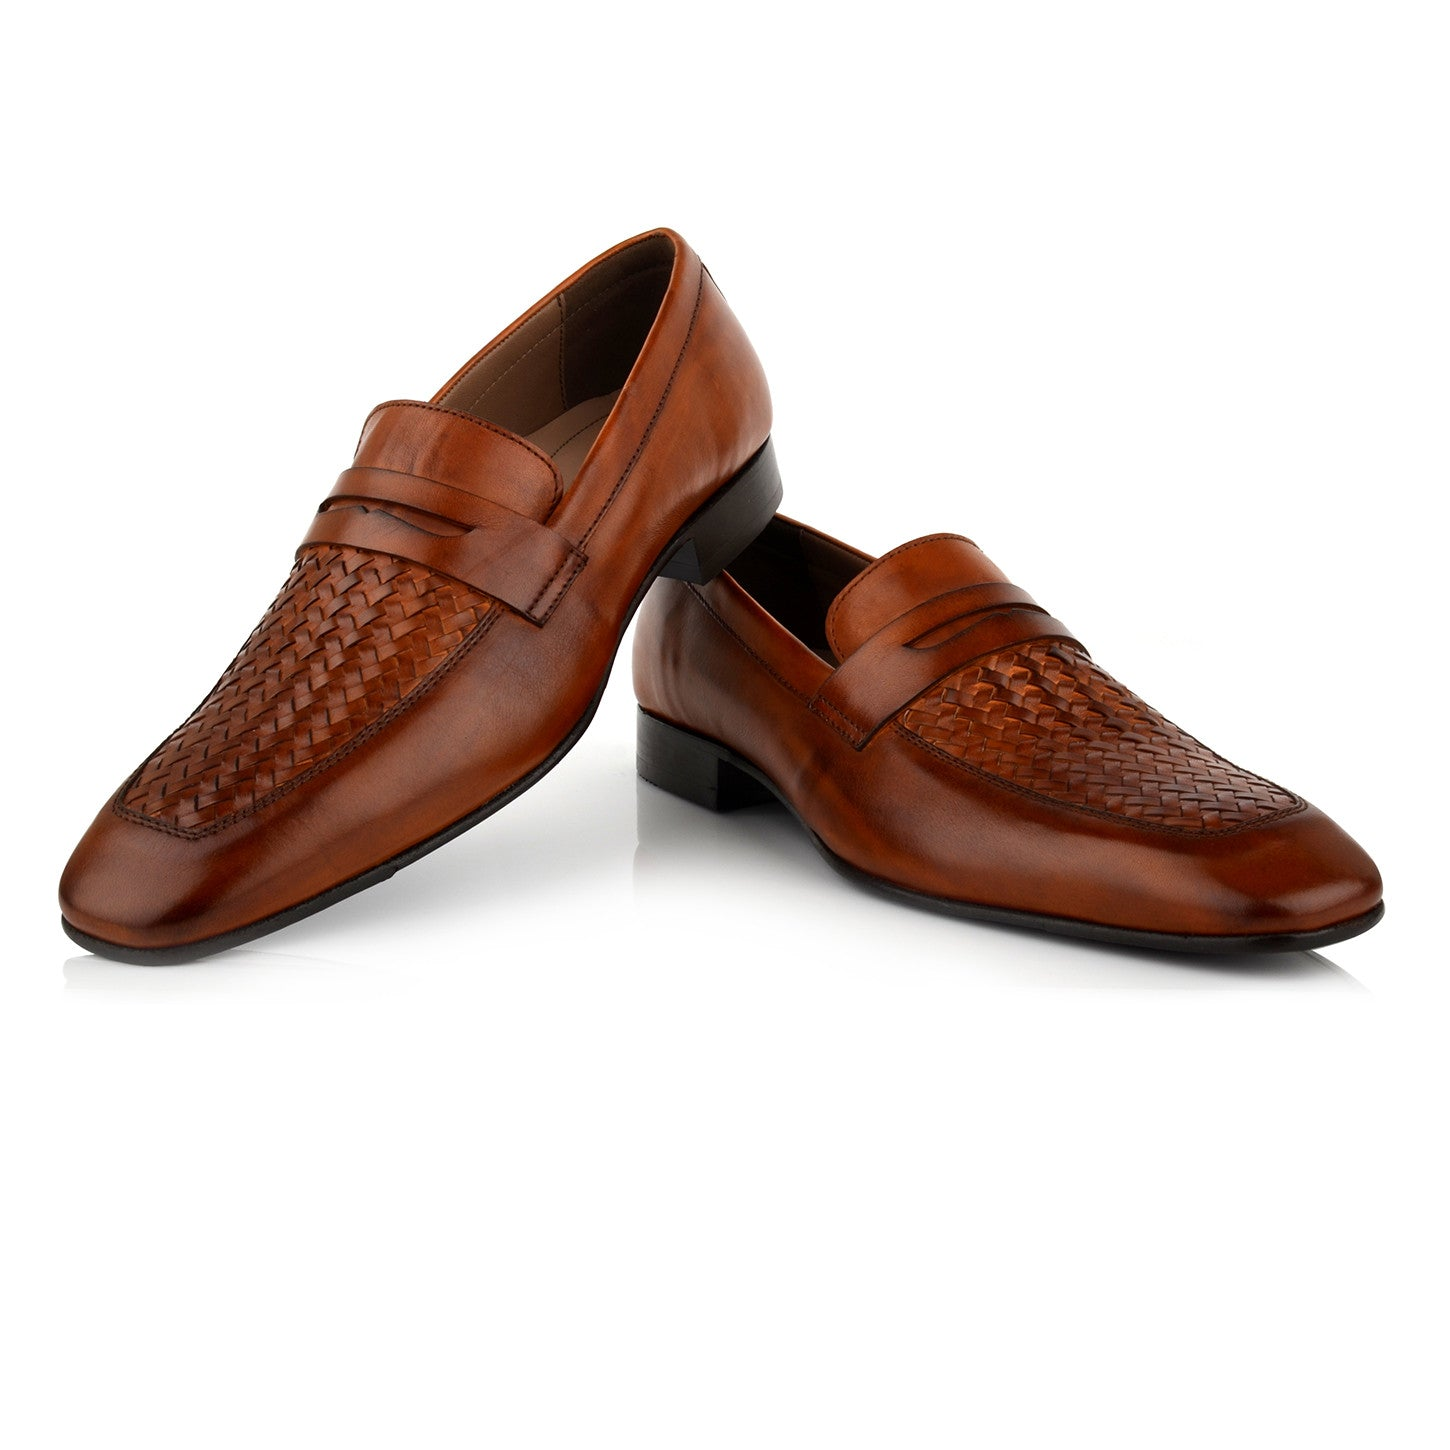 LM510 - Language Grata Men's Dress Tan Loafers